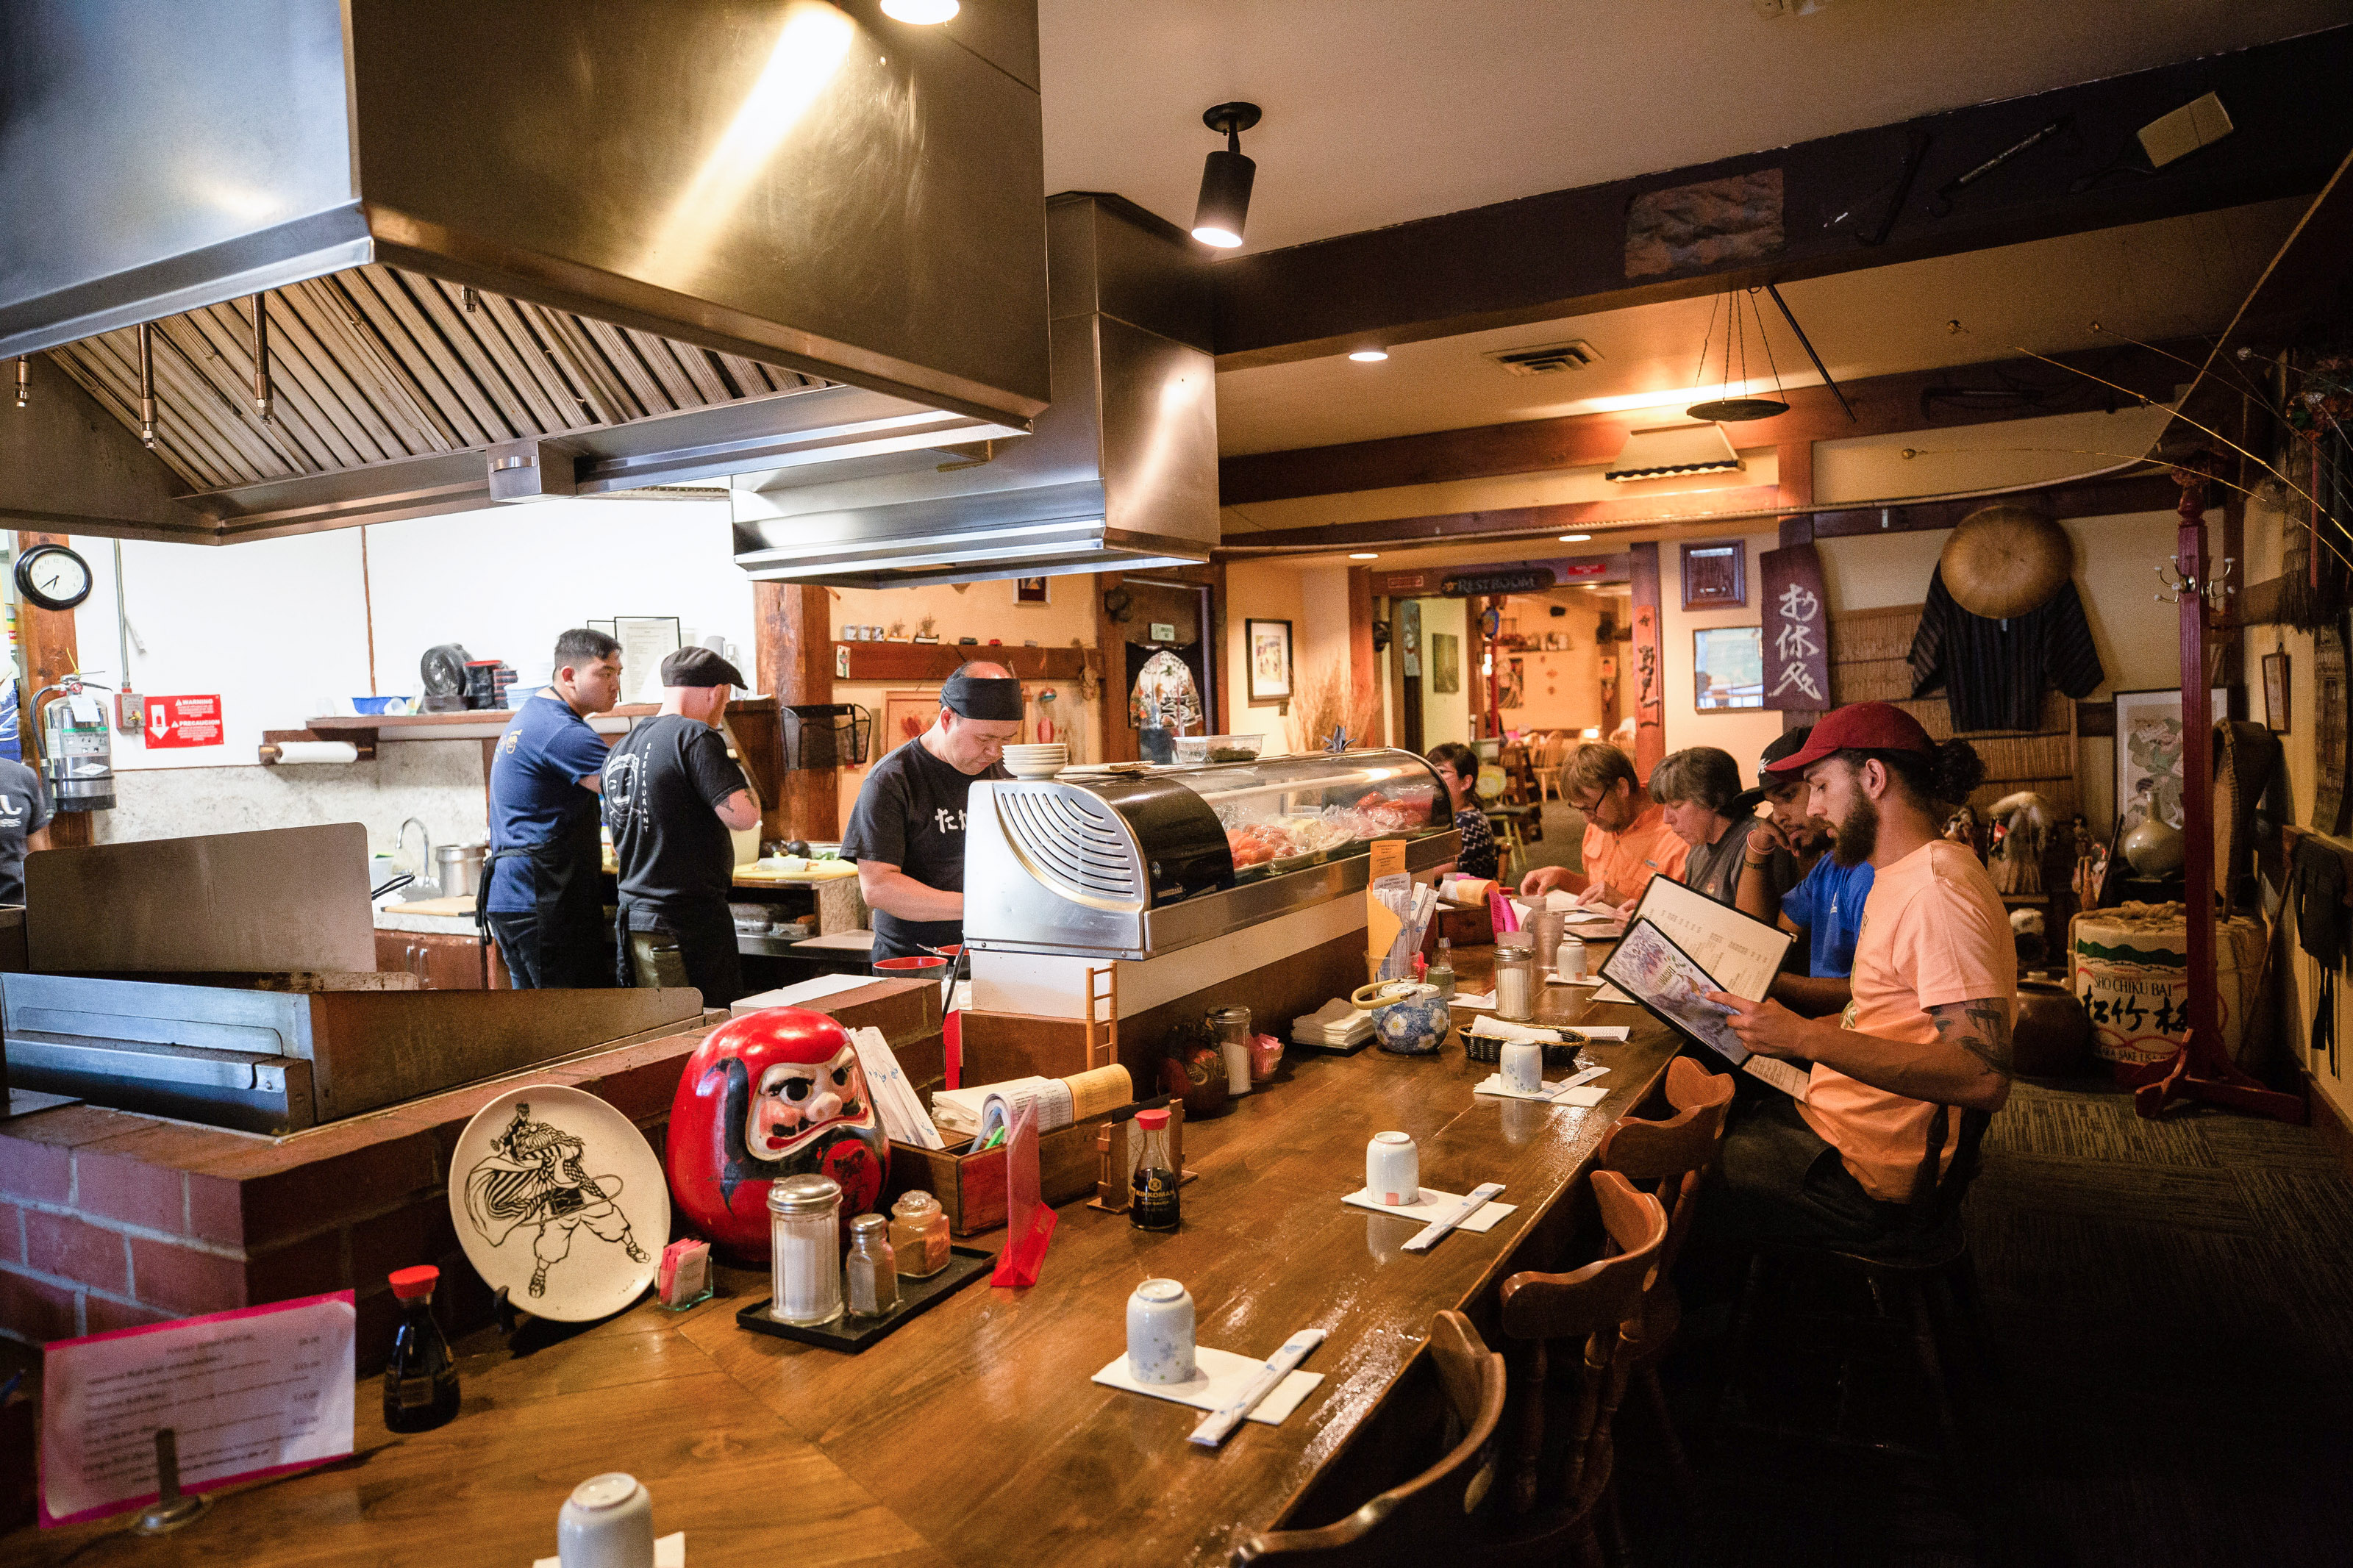 Customers sit around a bar while sushi chefs work